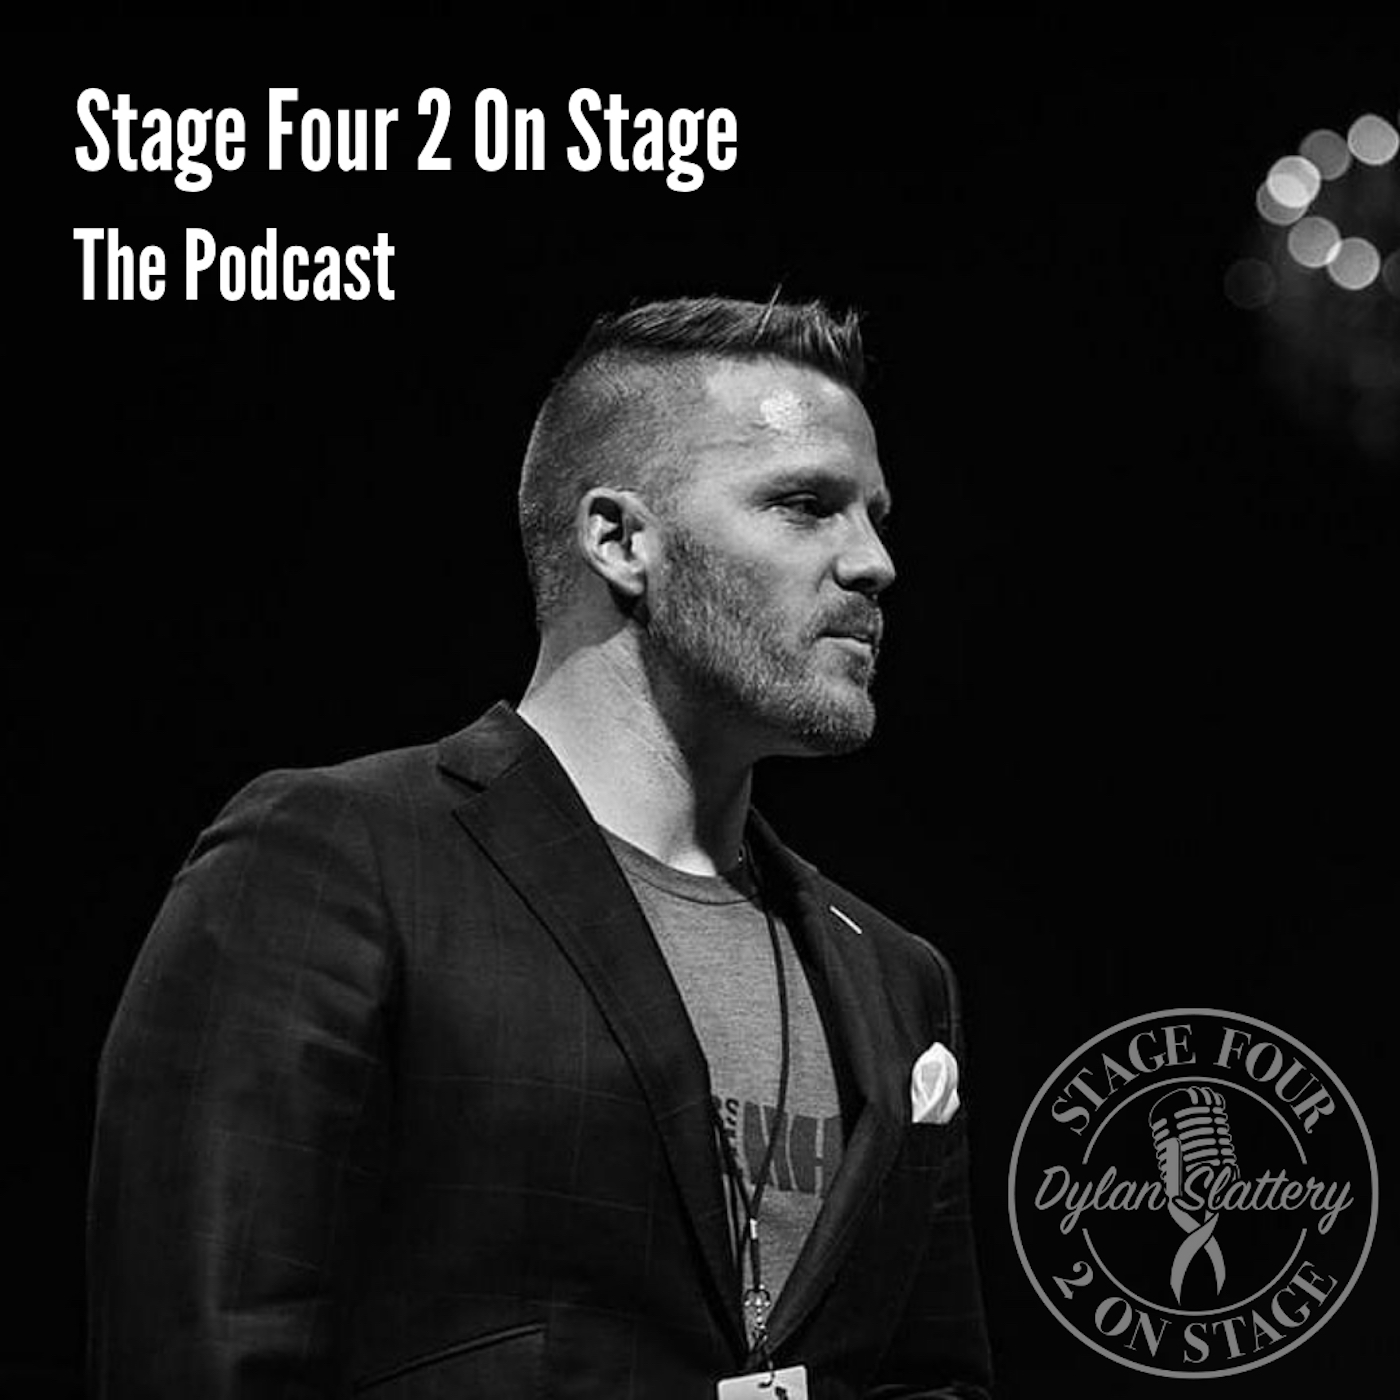 Stage Four 2 On Stage: The Podcast with Dylan Slattery show art